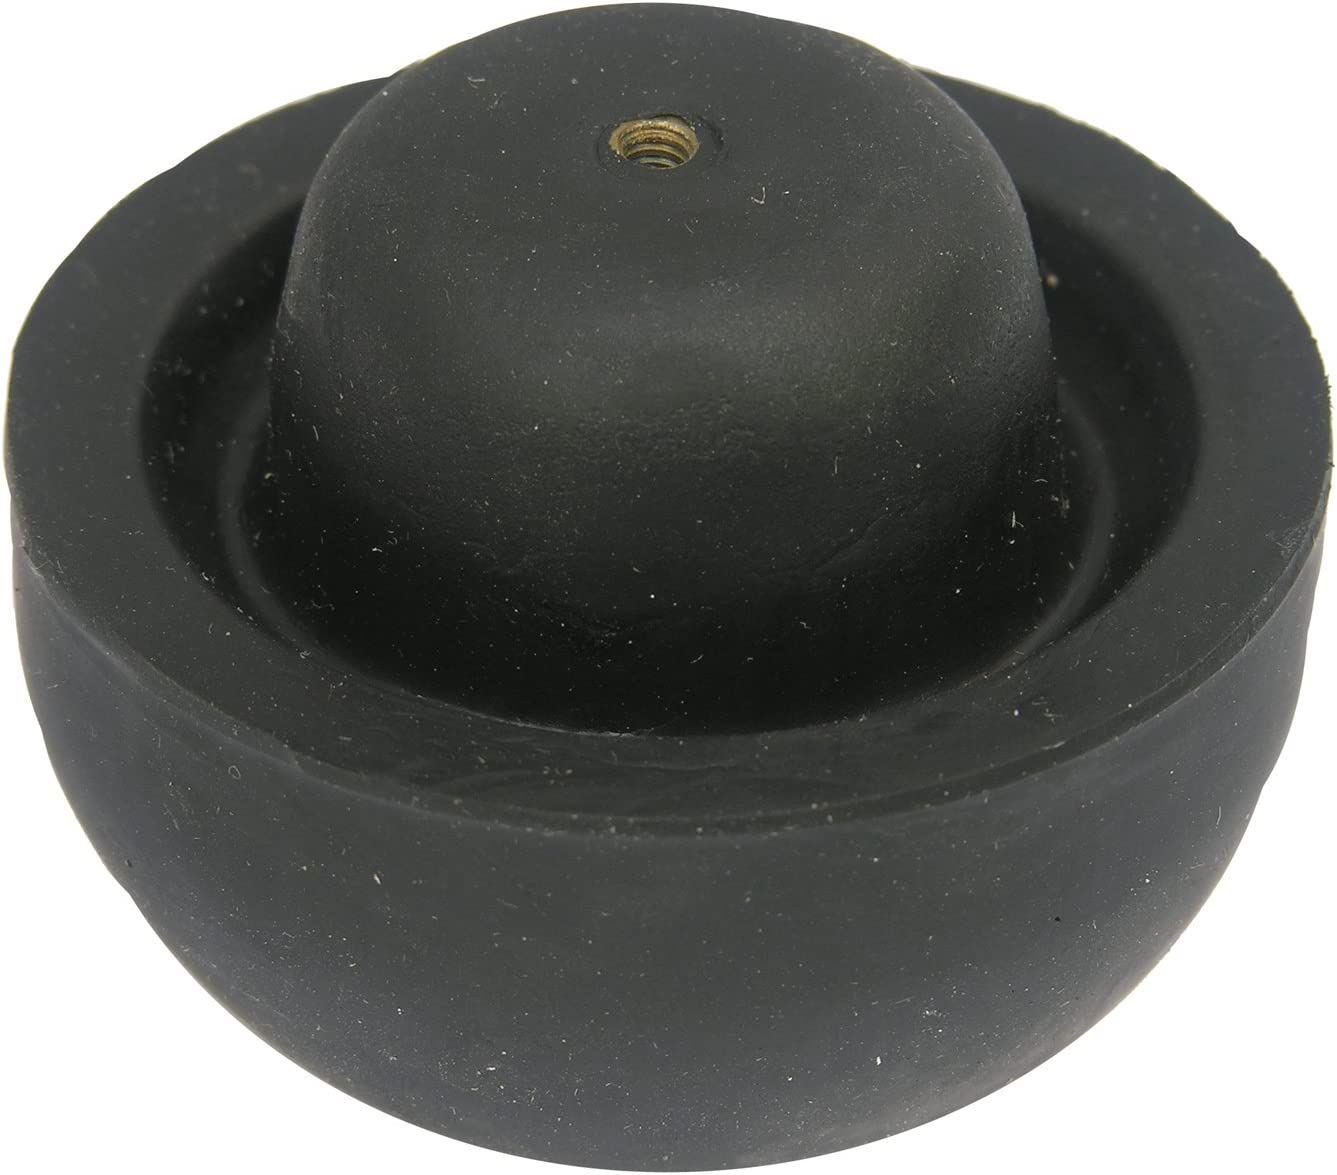 LASCO 04-1567 Rubber Tite Seal Overseas parallel import regular item Gifts Replacement Ball 1 2 Tank Toilet